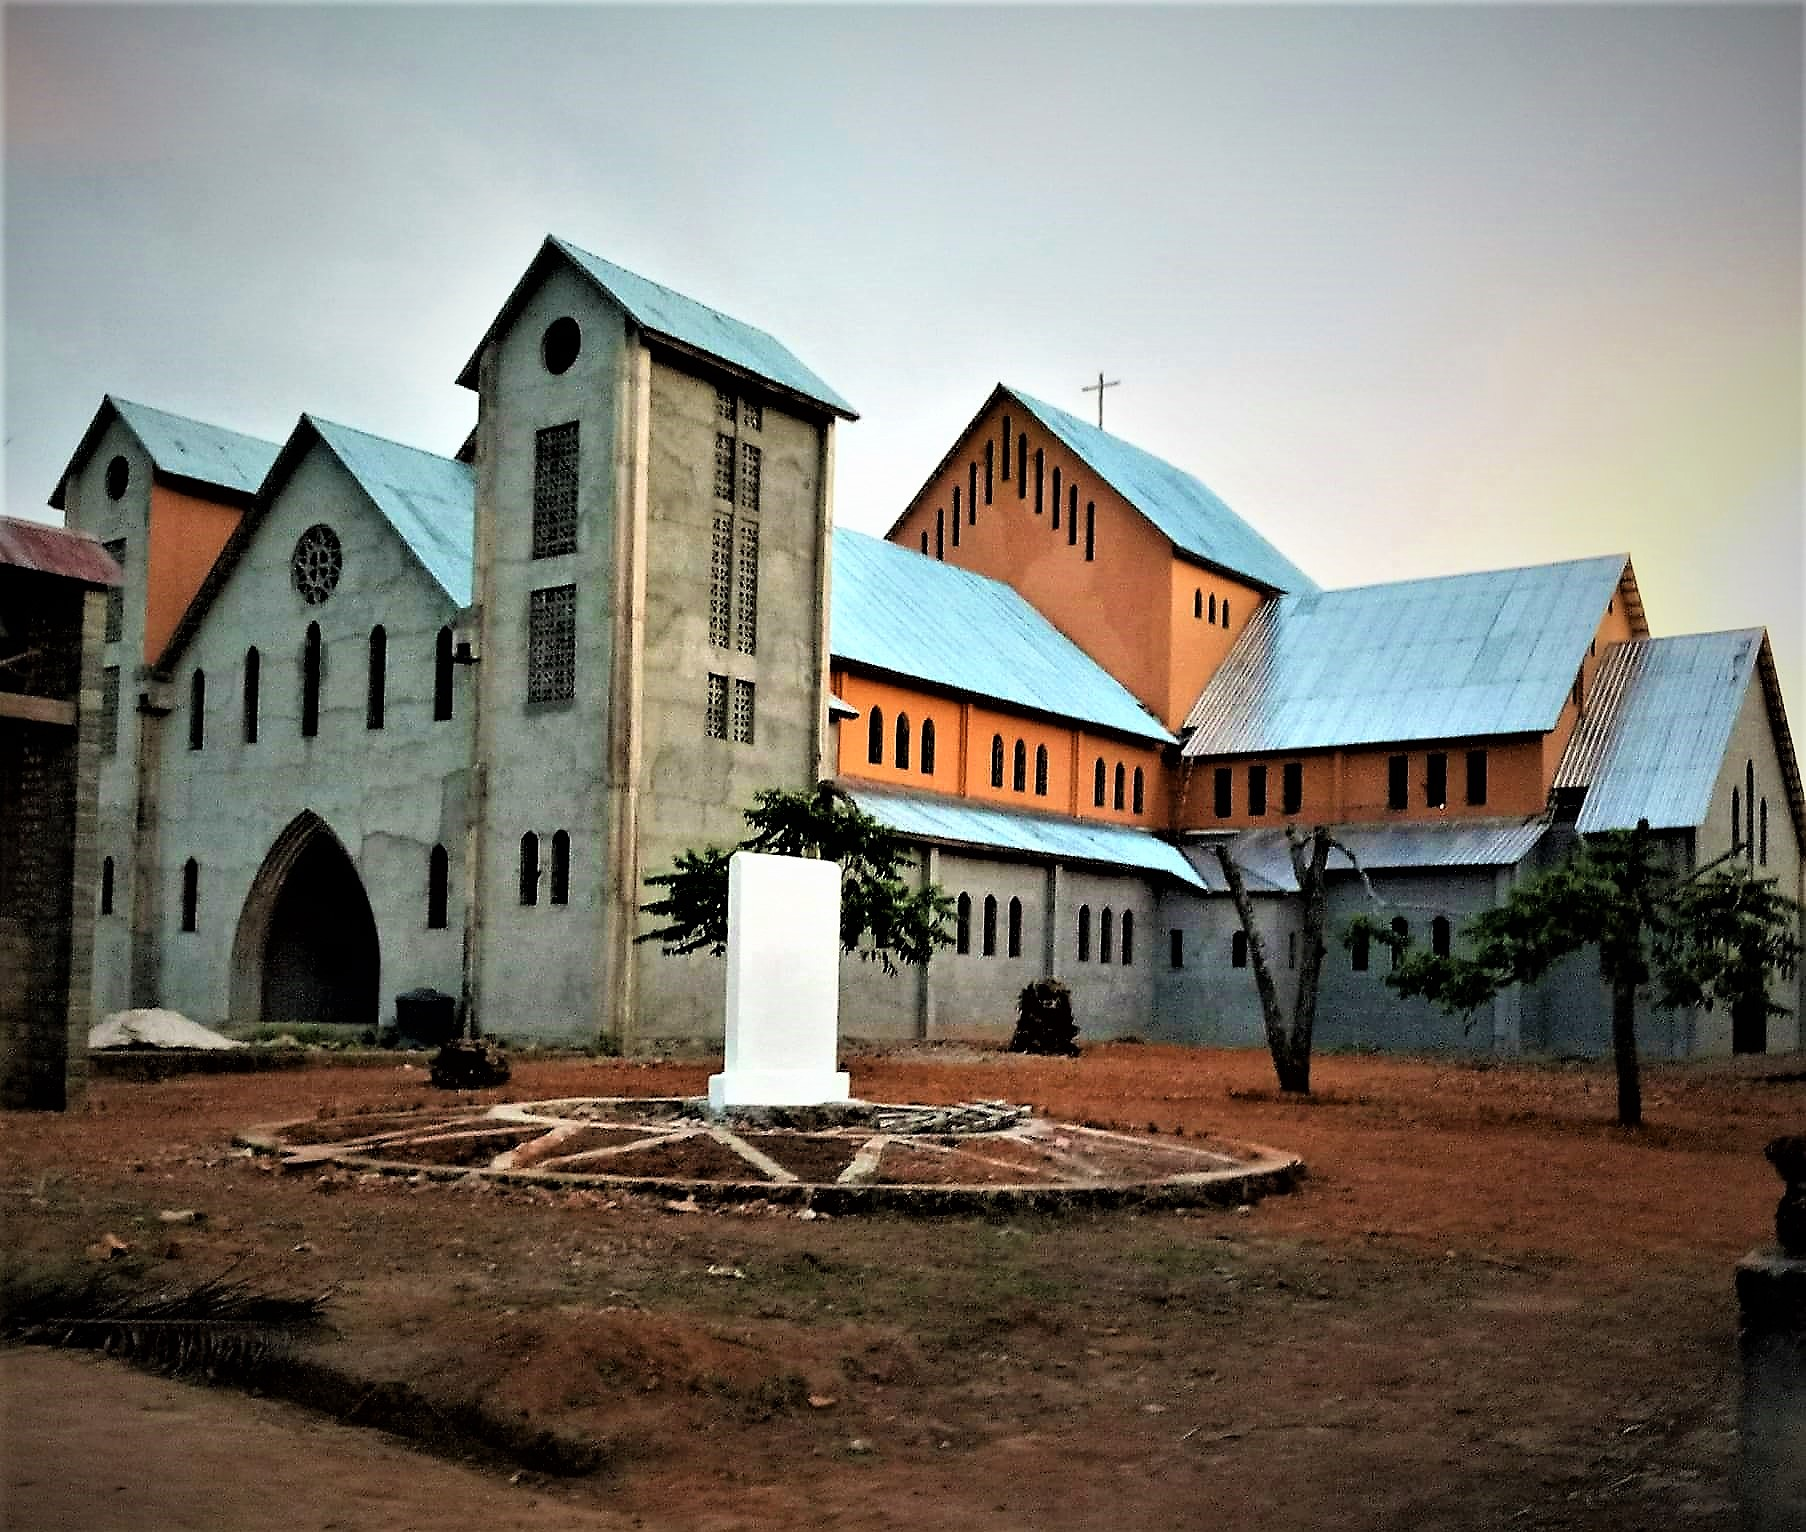 Basankusu, DR Congo: Inauguration of New Cathedral that took Six Years Building